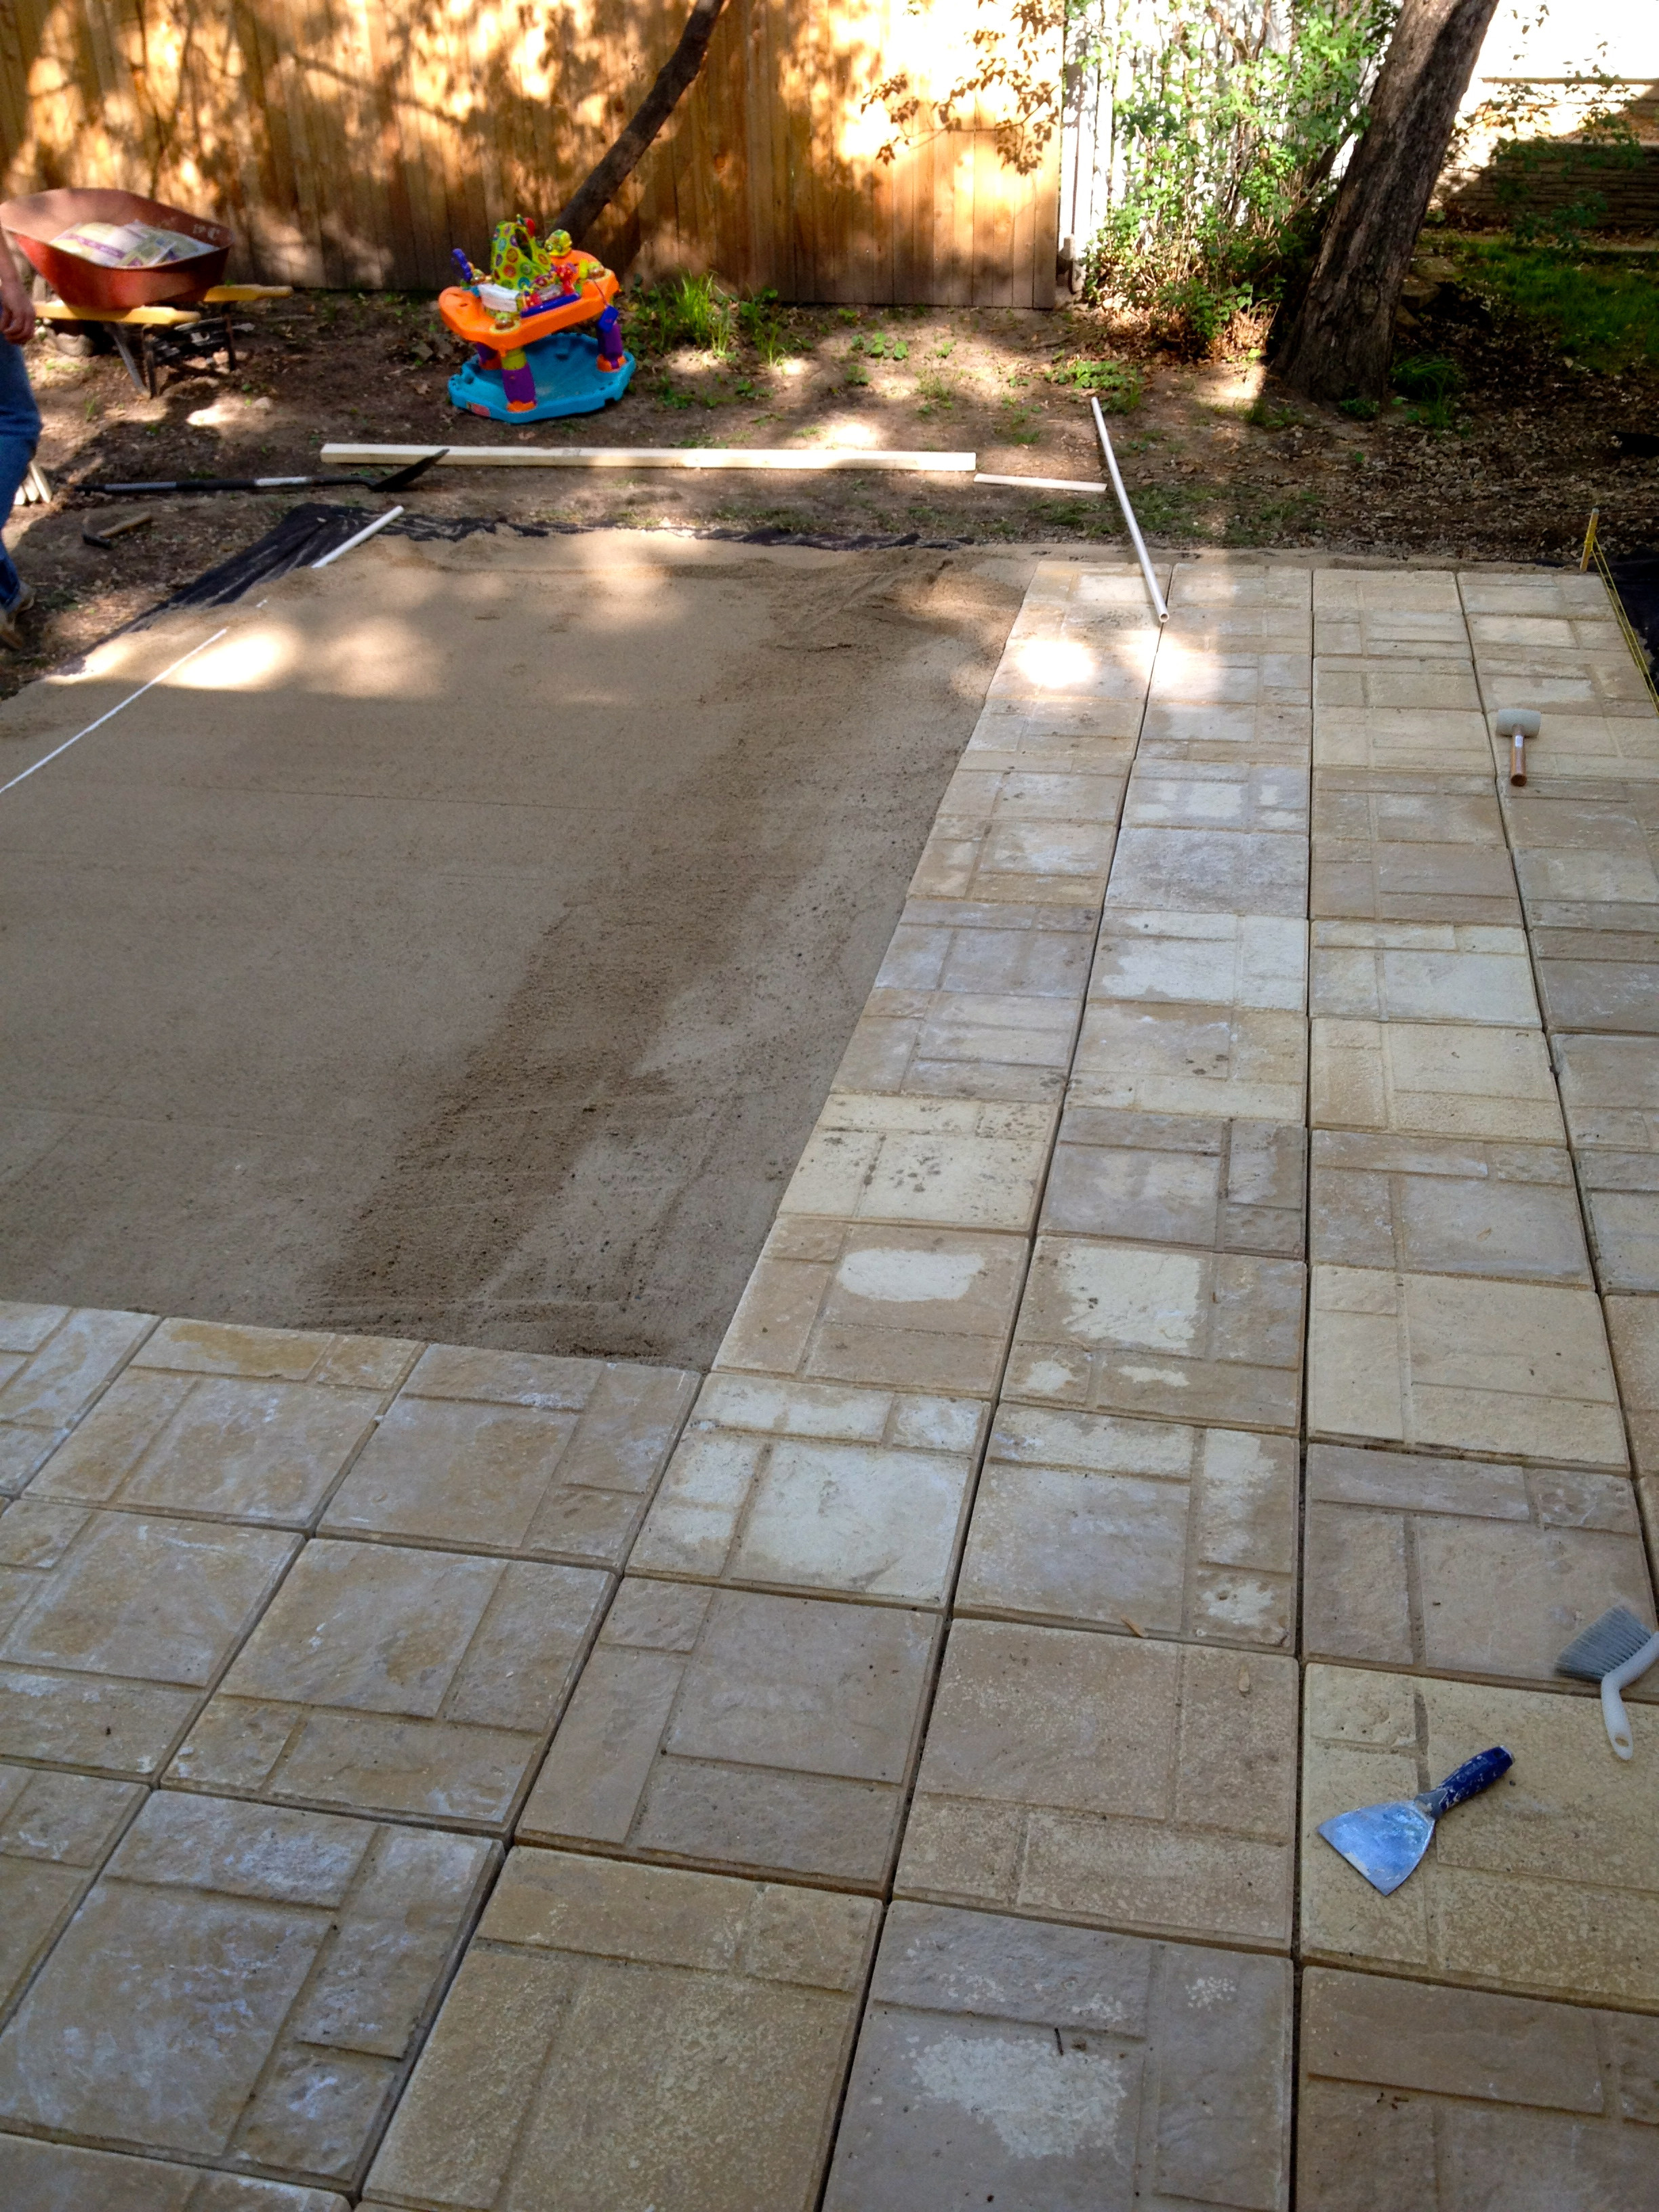 Best ideas about DIY Pavers Patio . Save or Pin DIY Paver Patio Now.